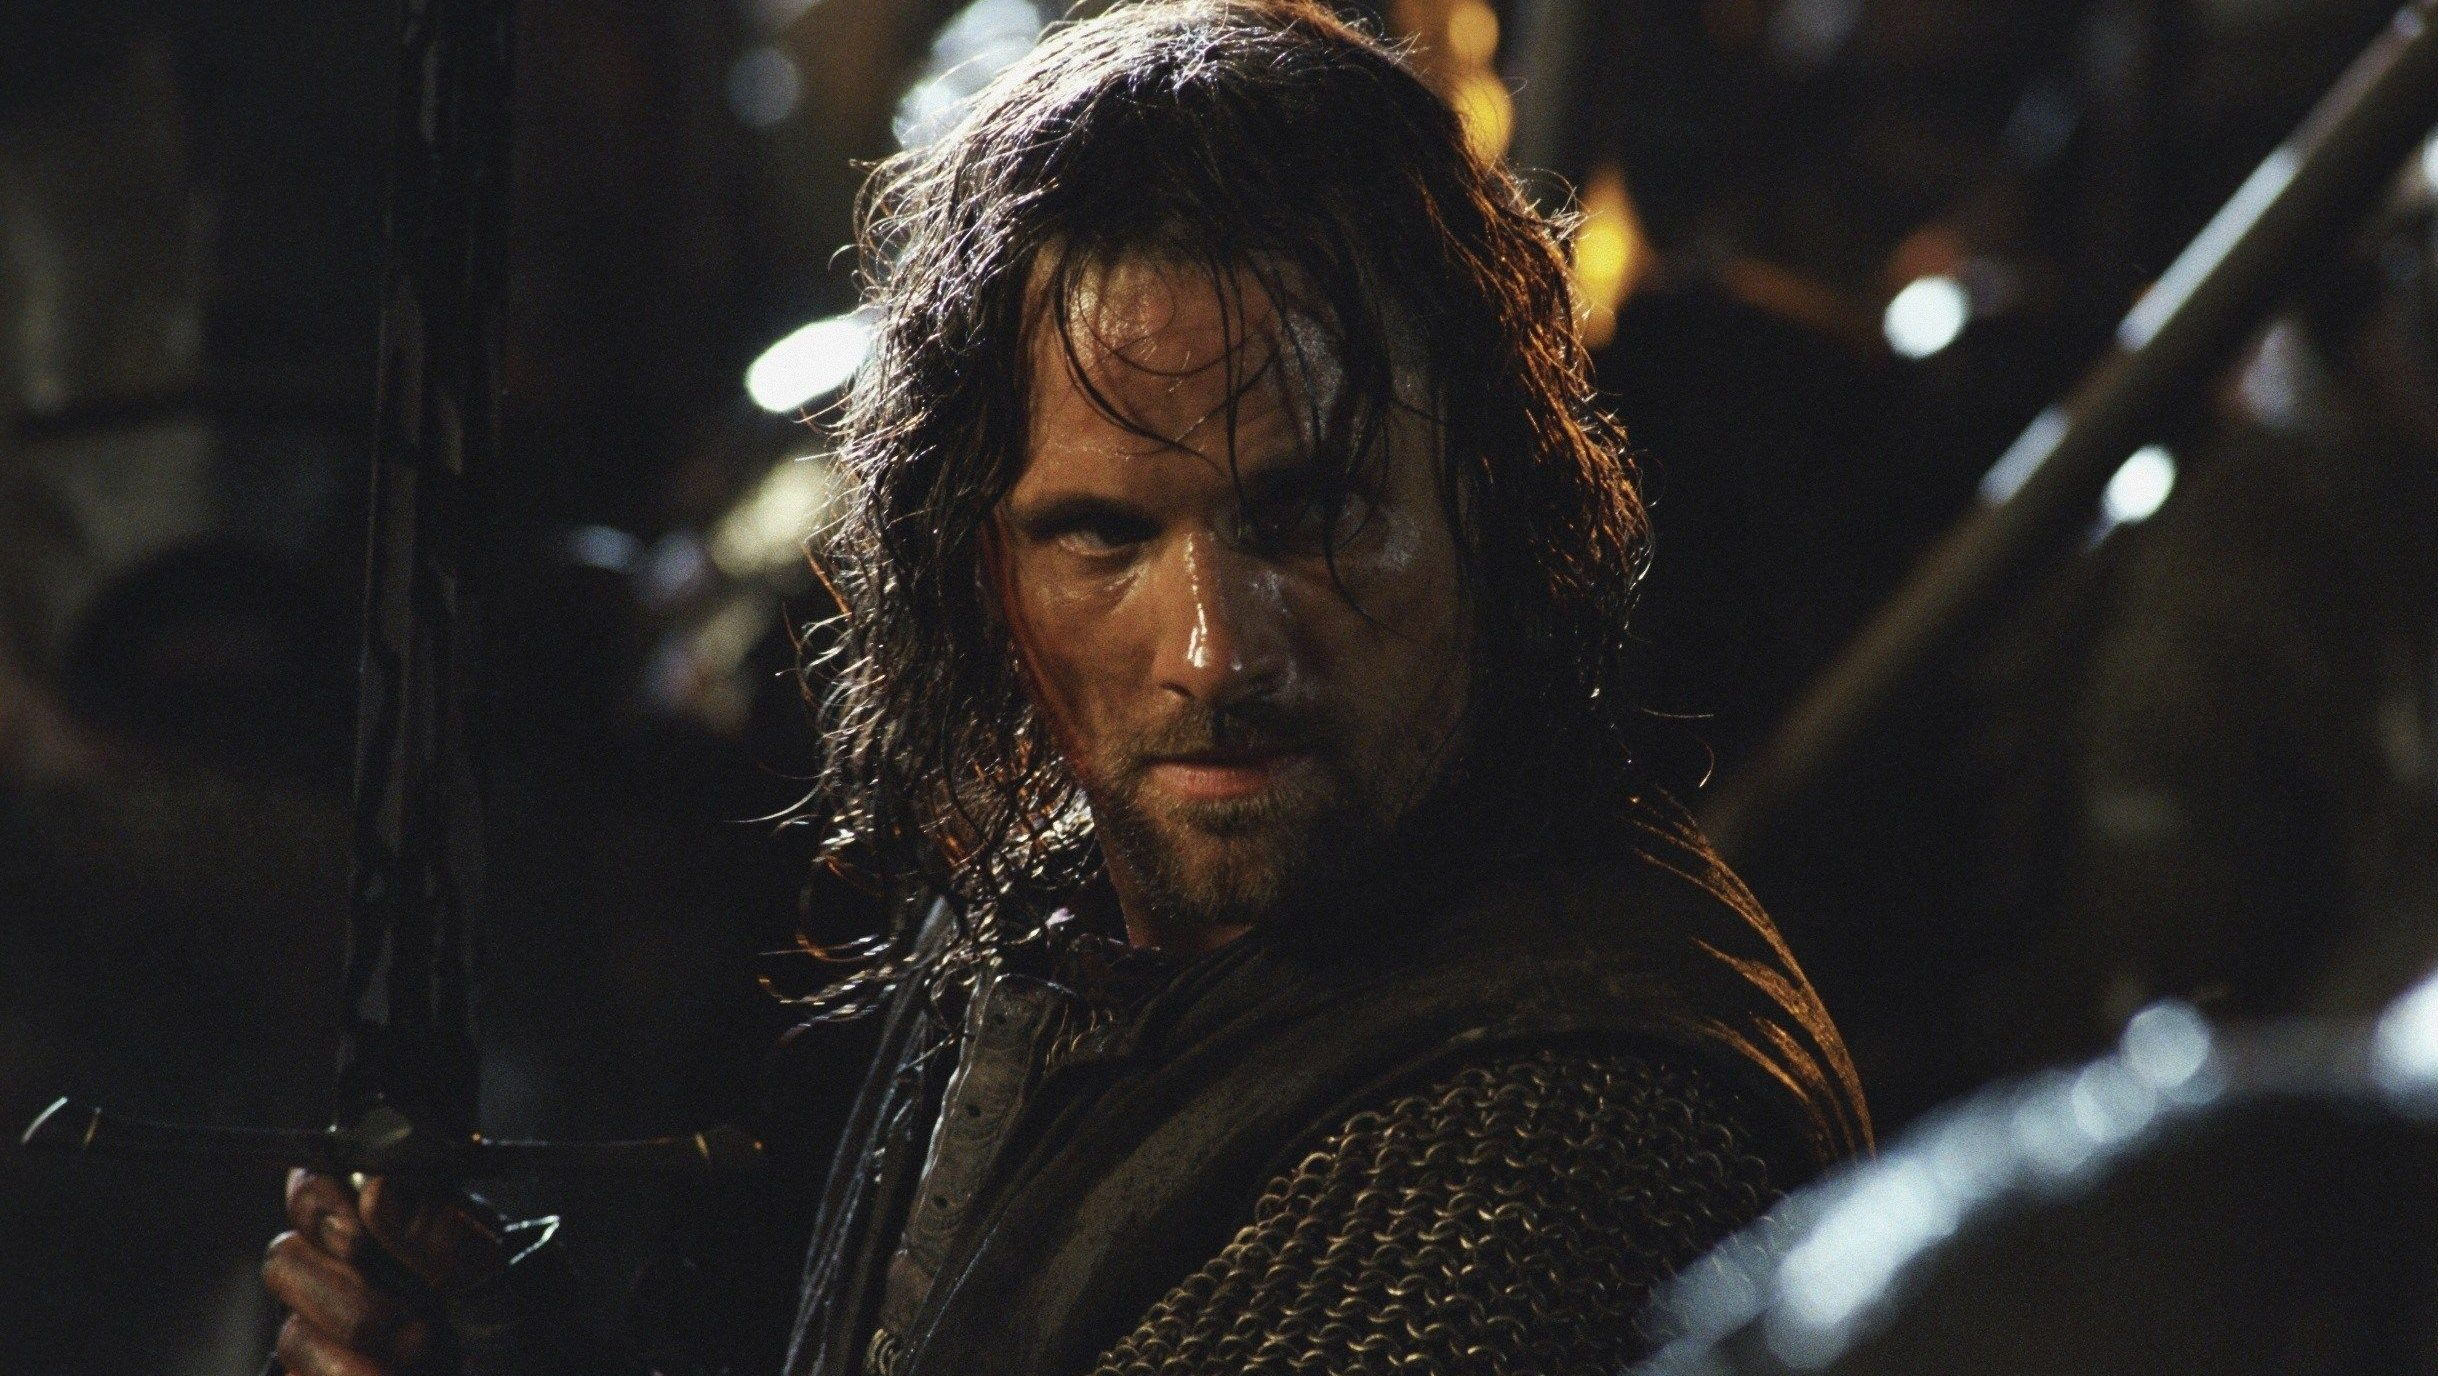 """Amazon's """"Lord of the Rings"""" series may feature Aragorn, who may remind  """"Game of Thrones"""" fans of Jon Snow — Quartz"""